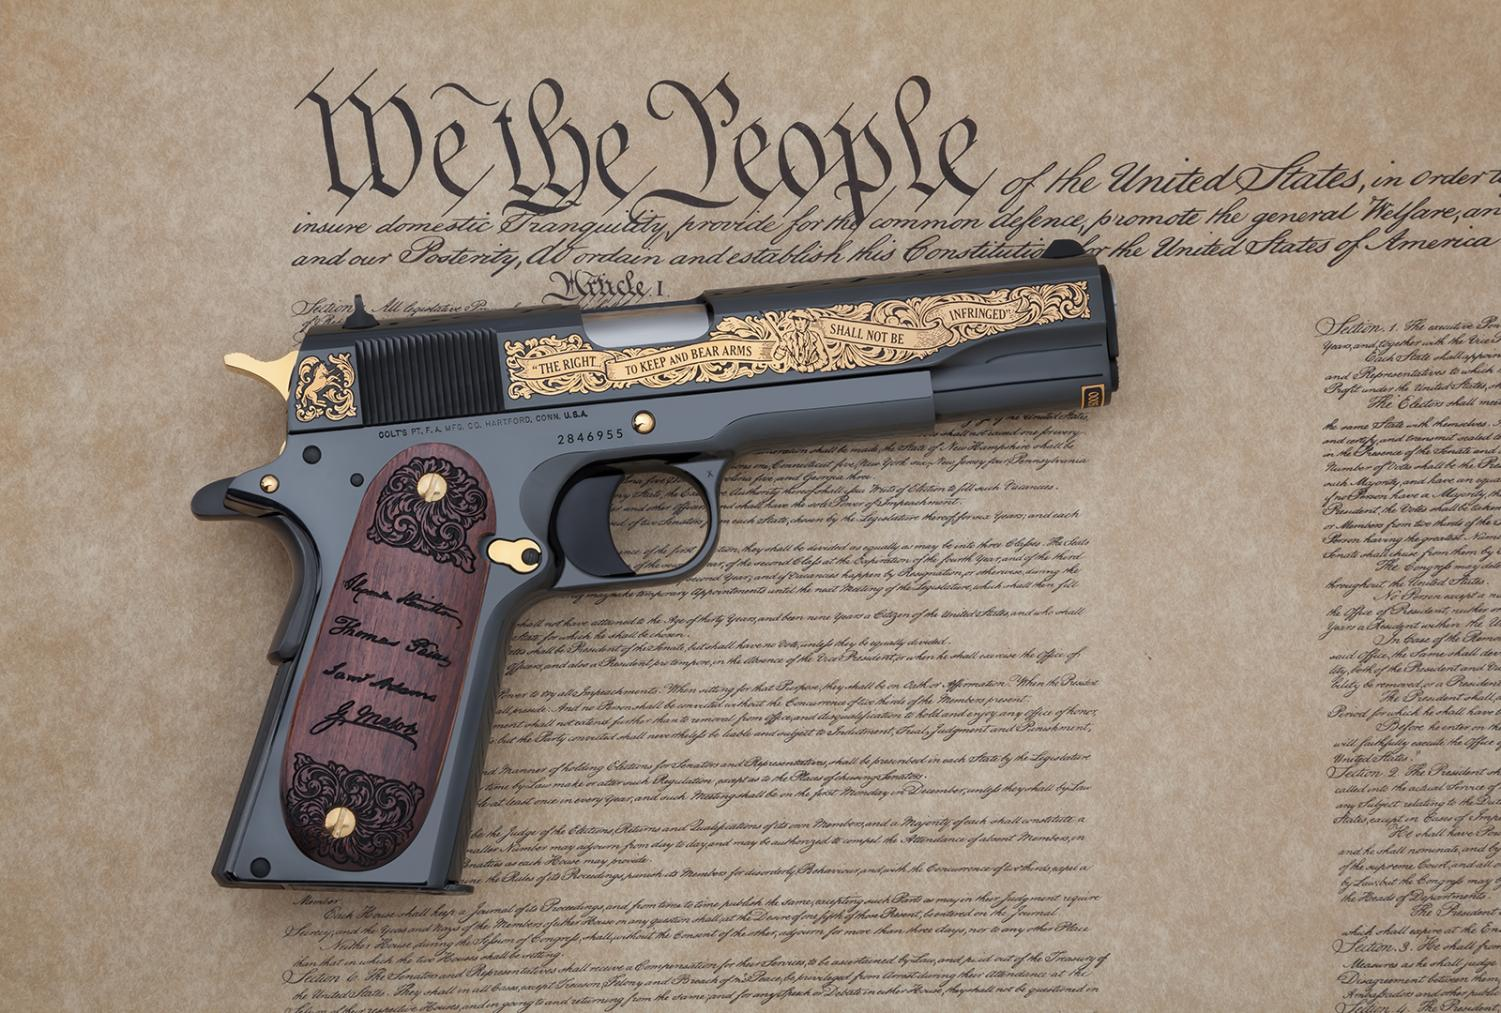 'Seventeen outstanding new reasons ... to question the Second Amendment'